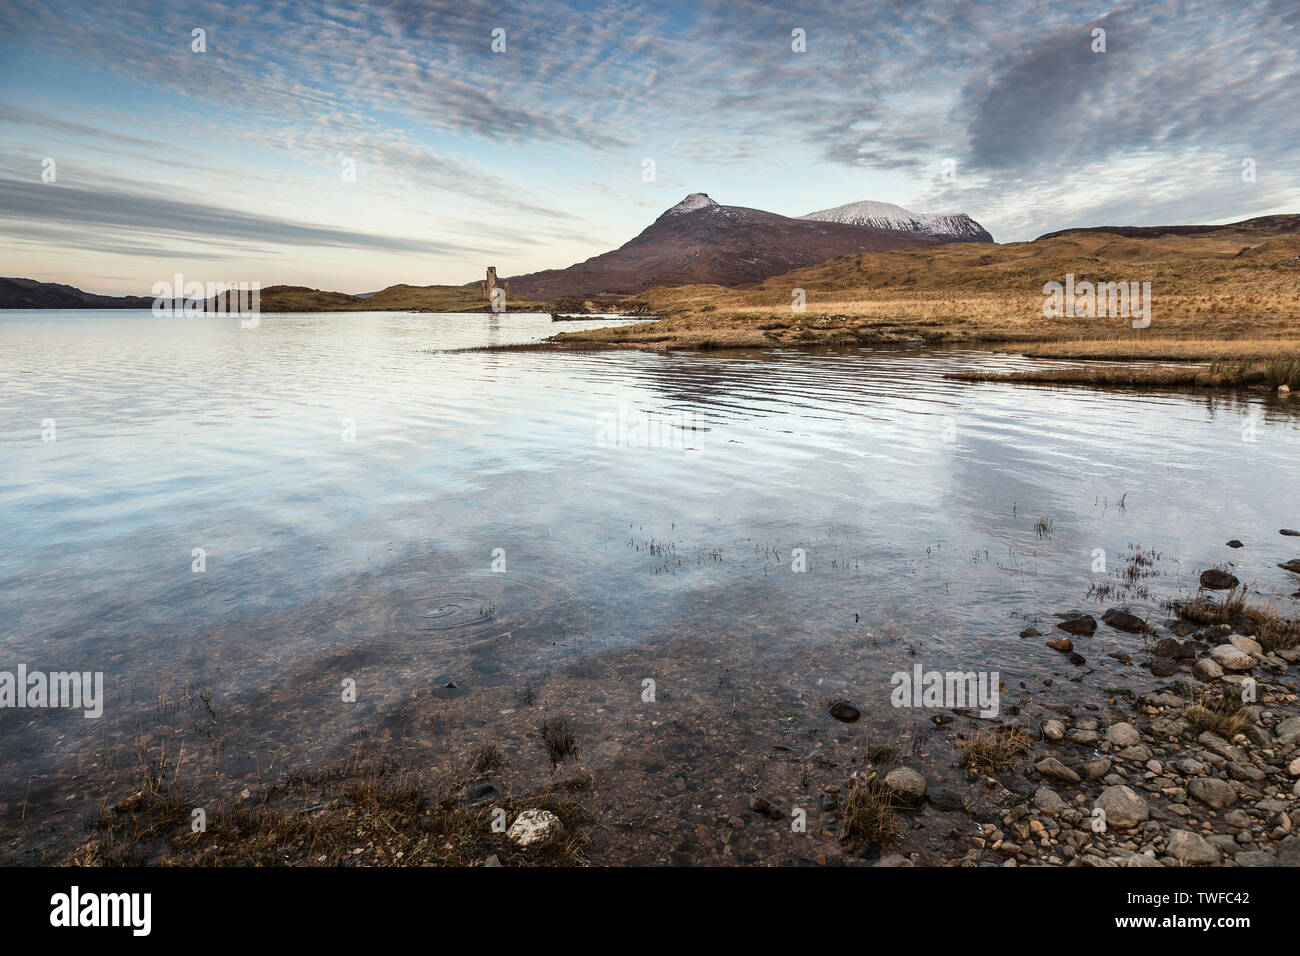 Dawn over Loch Assynt in the Scottish Highlands. - Stock Image